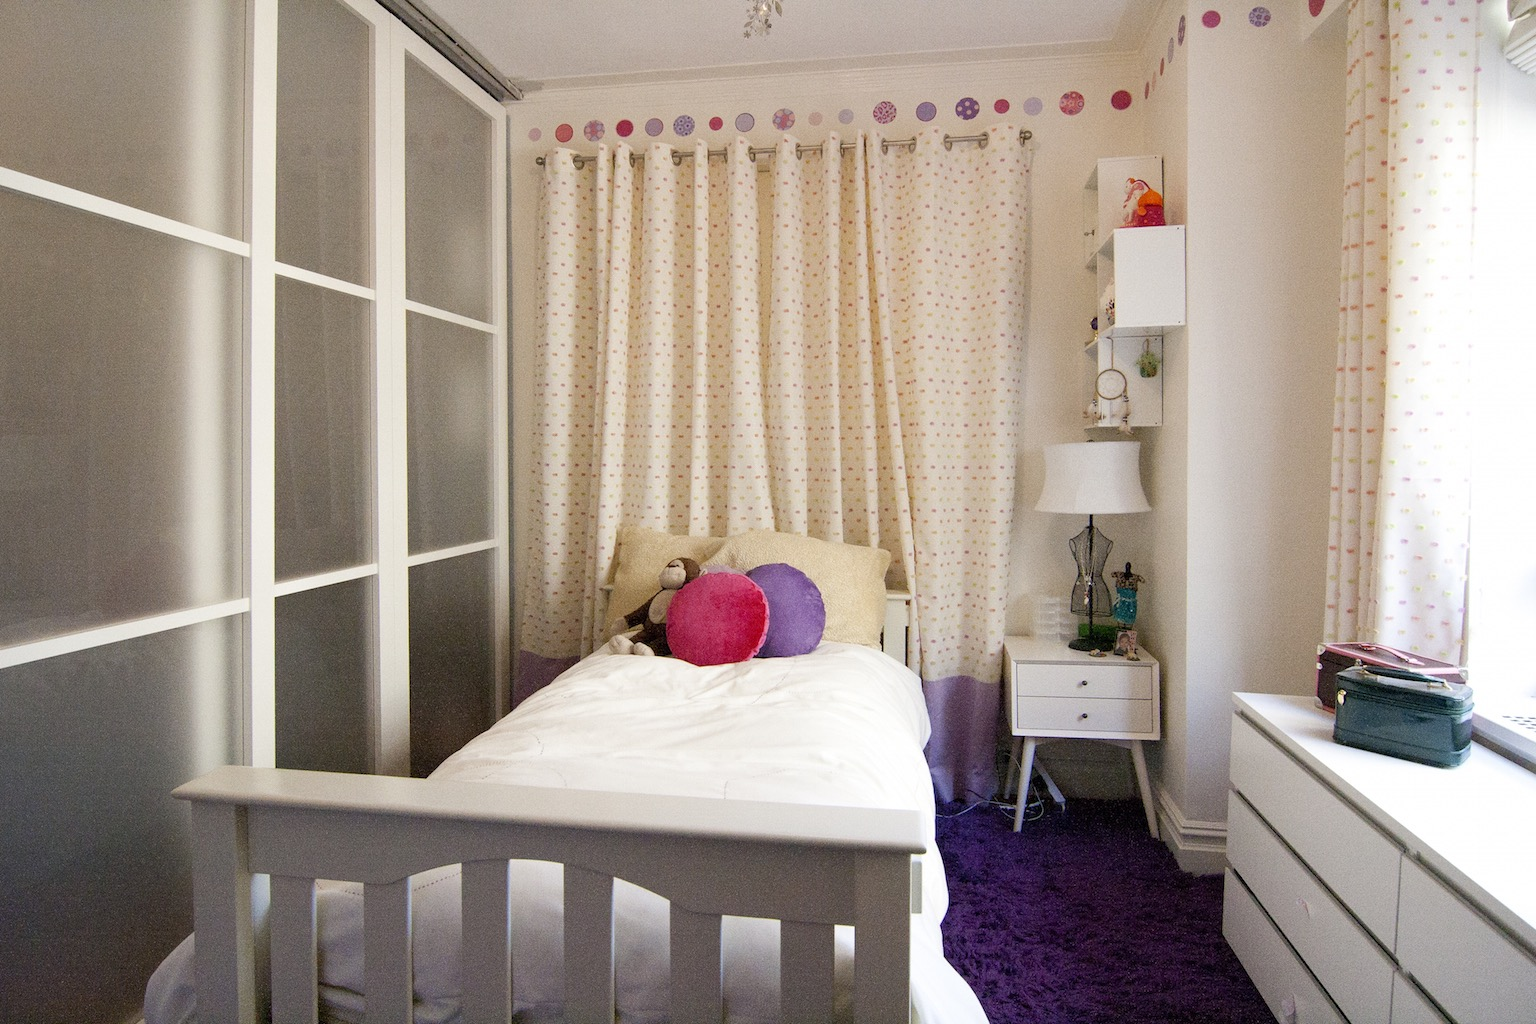 Chic Girl's Bedroom With Polka Dot Accents For Small Apartment (Image 9 of 30)